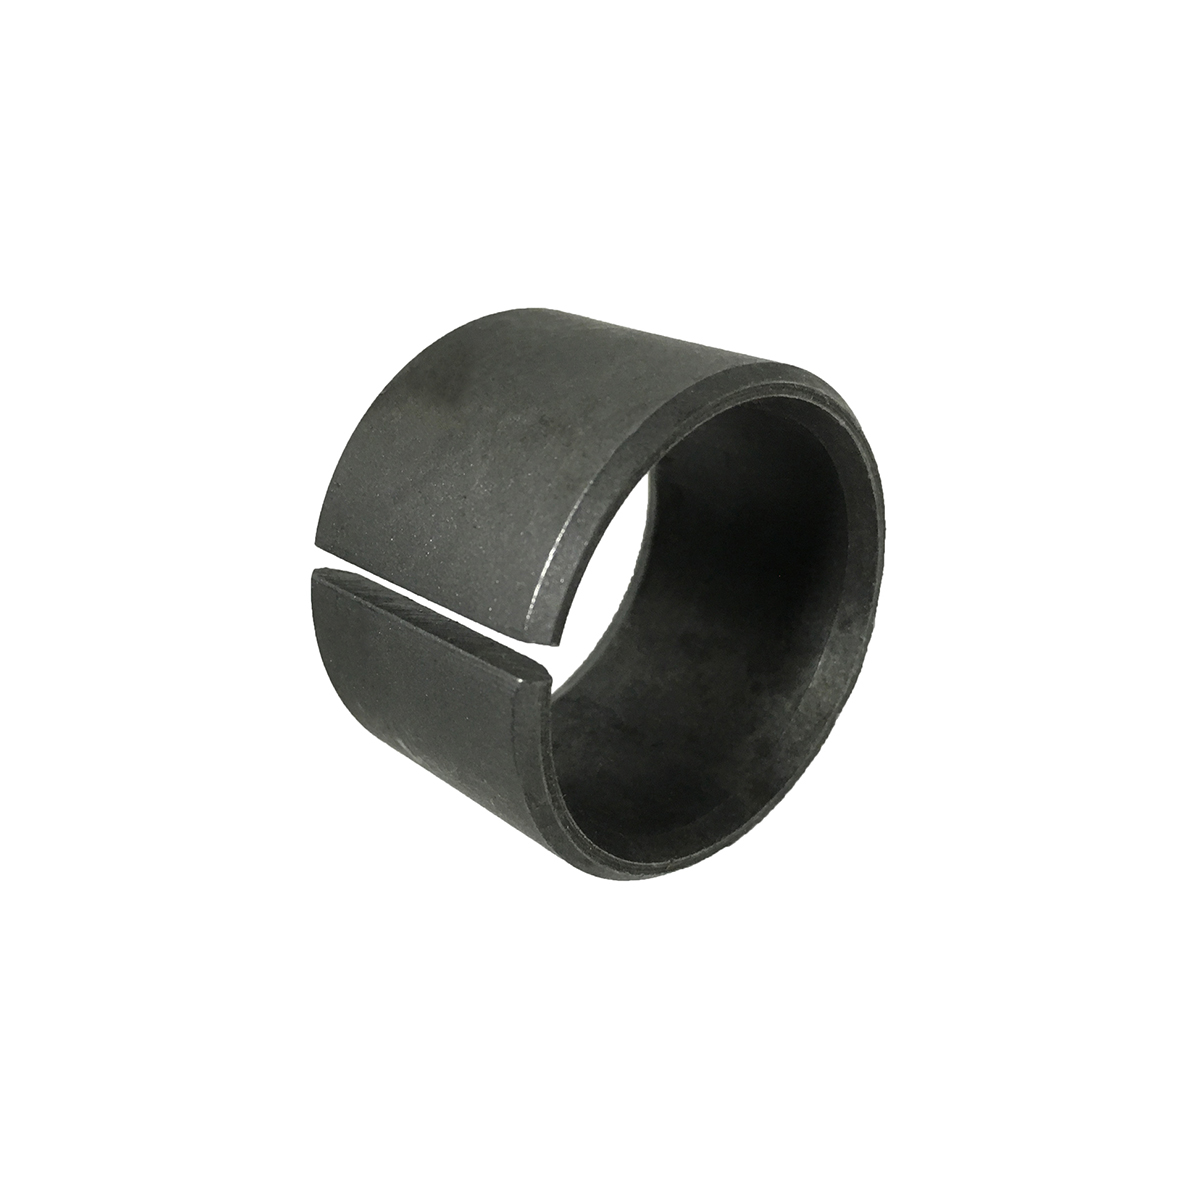 1.25 x 1 steel bushing reducer for hydraulic cylinder